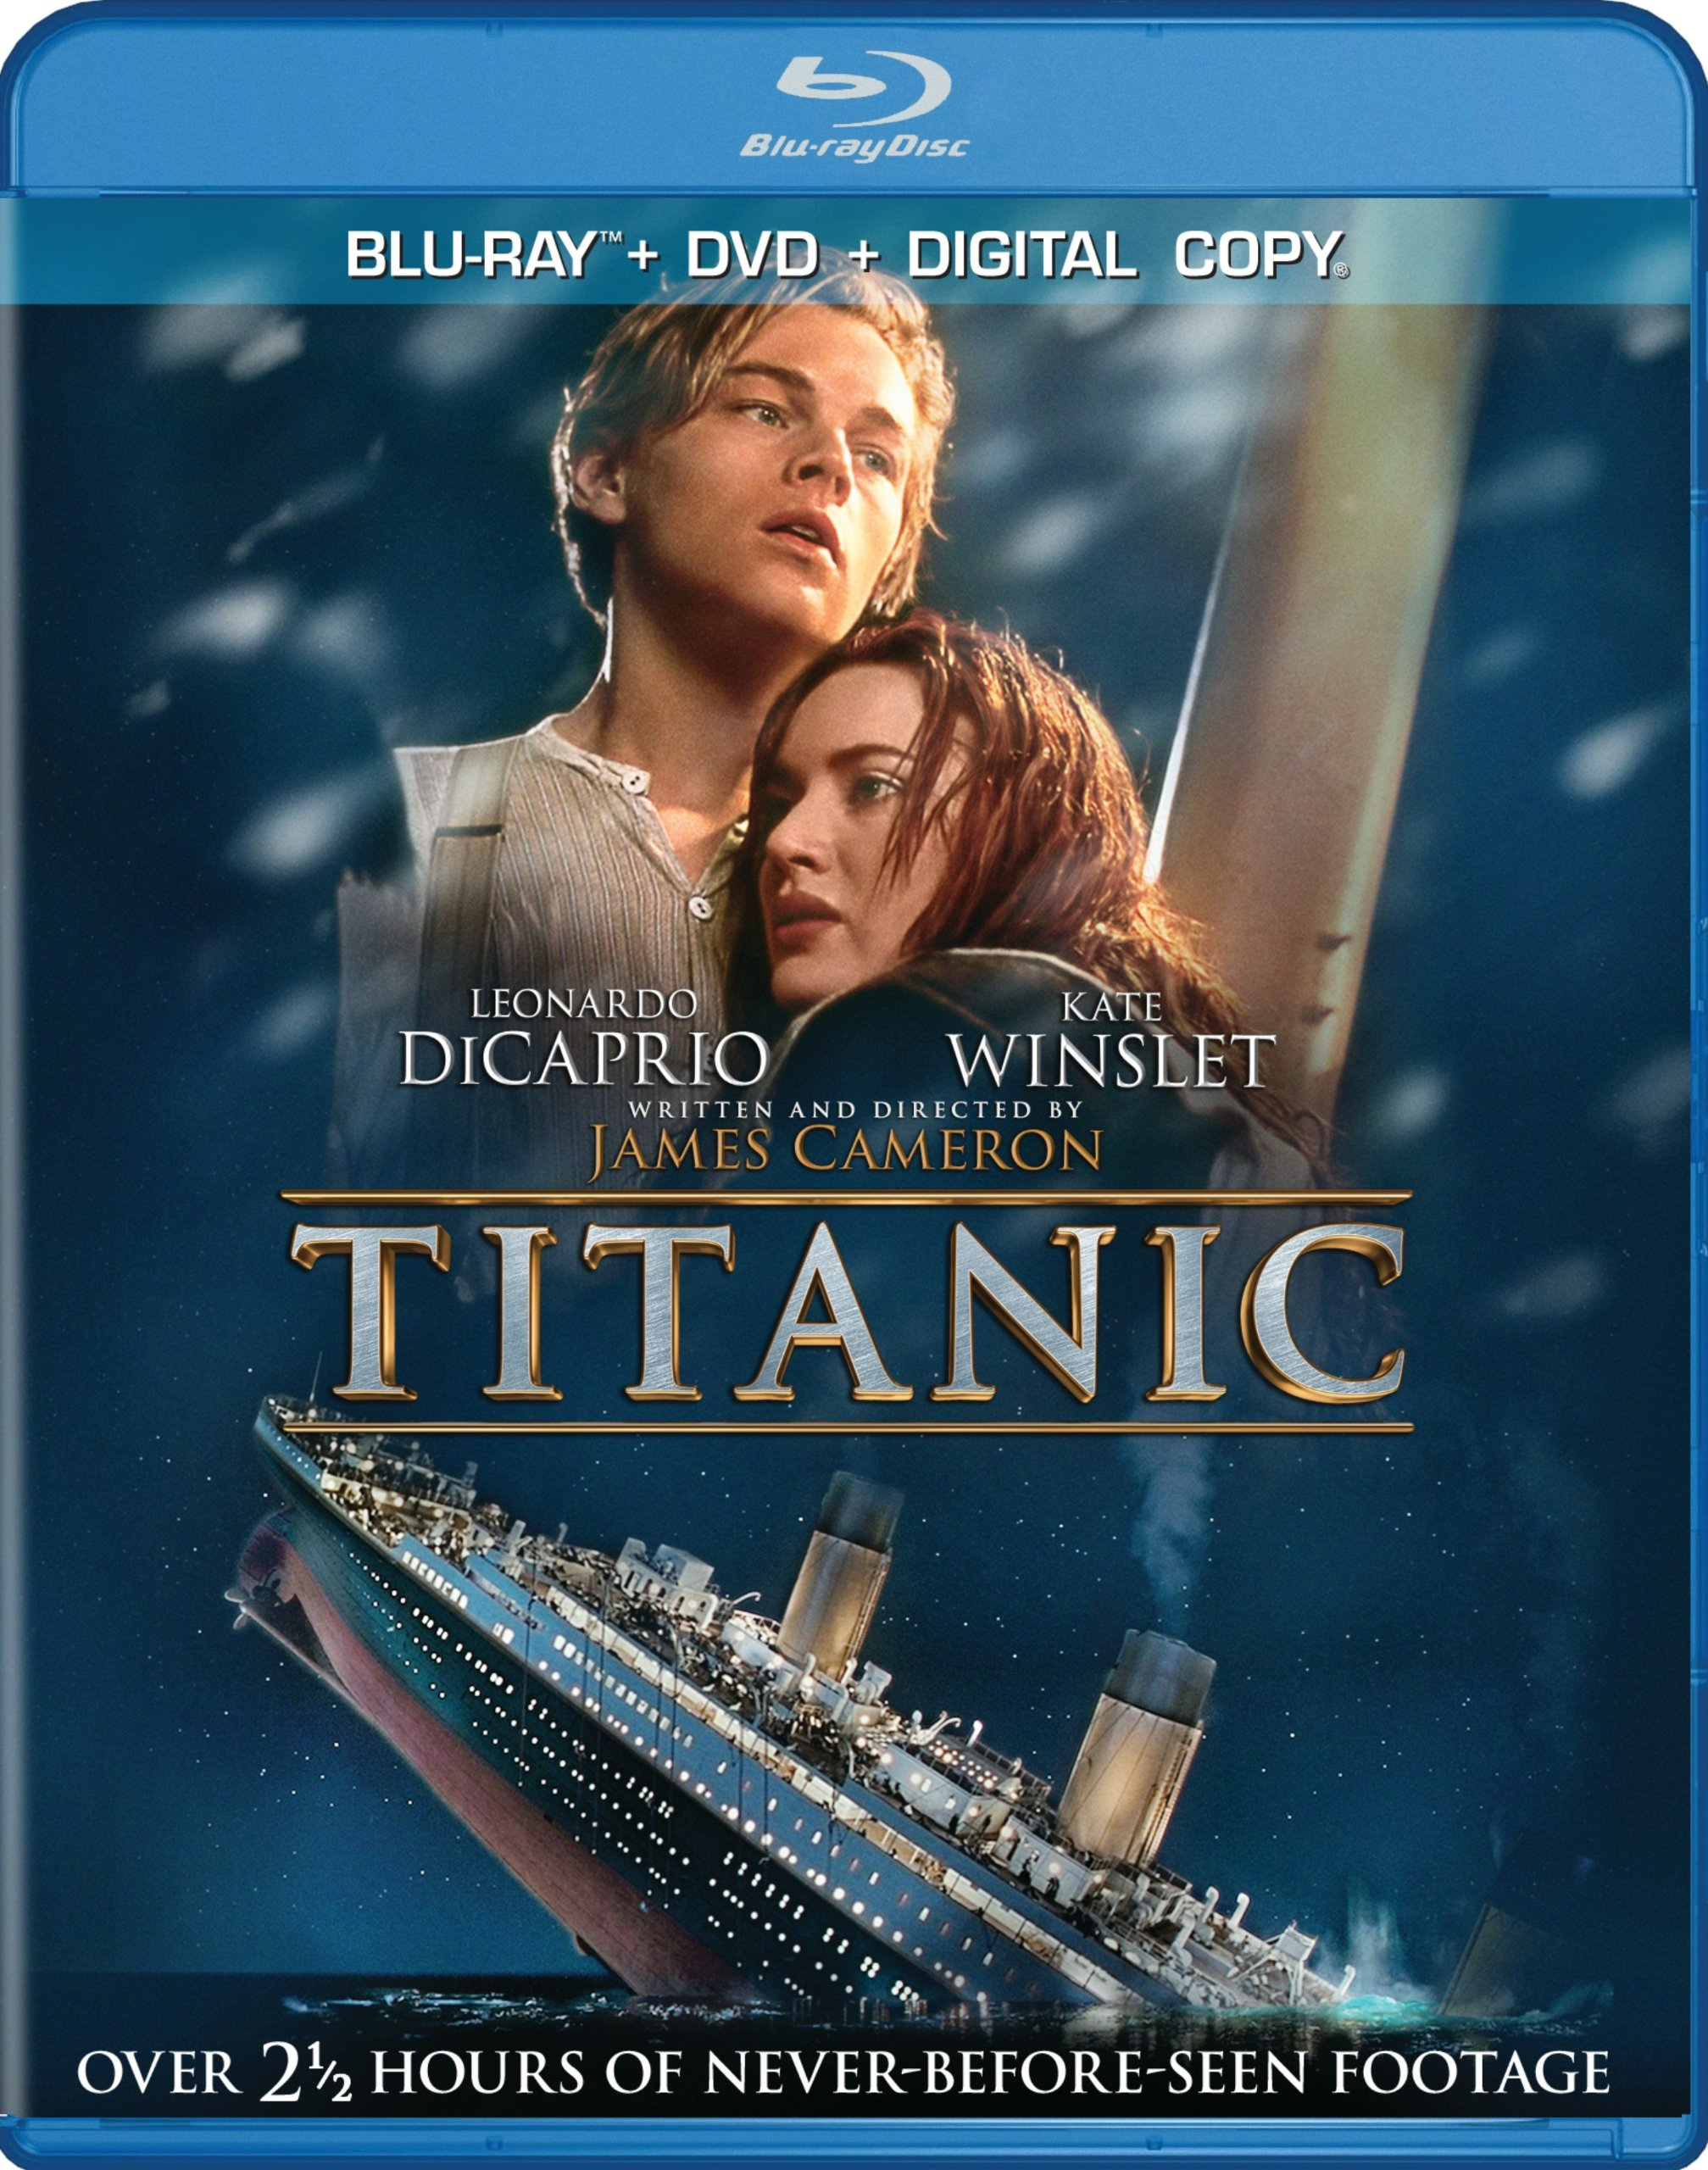 Blu-ray : Titanic (With DVD, Ultraviolet Digital Copy, Boxed Set, Digital Copy, )